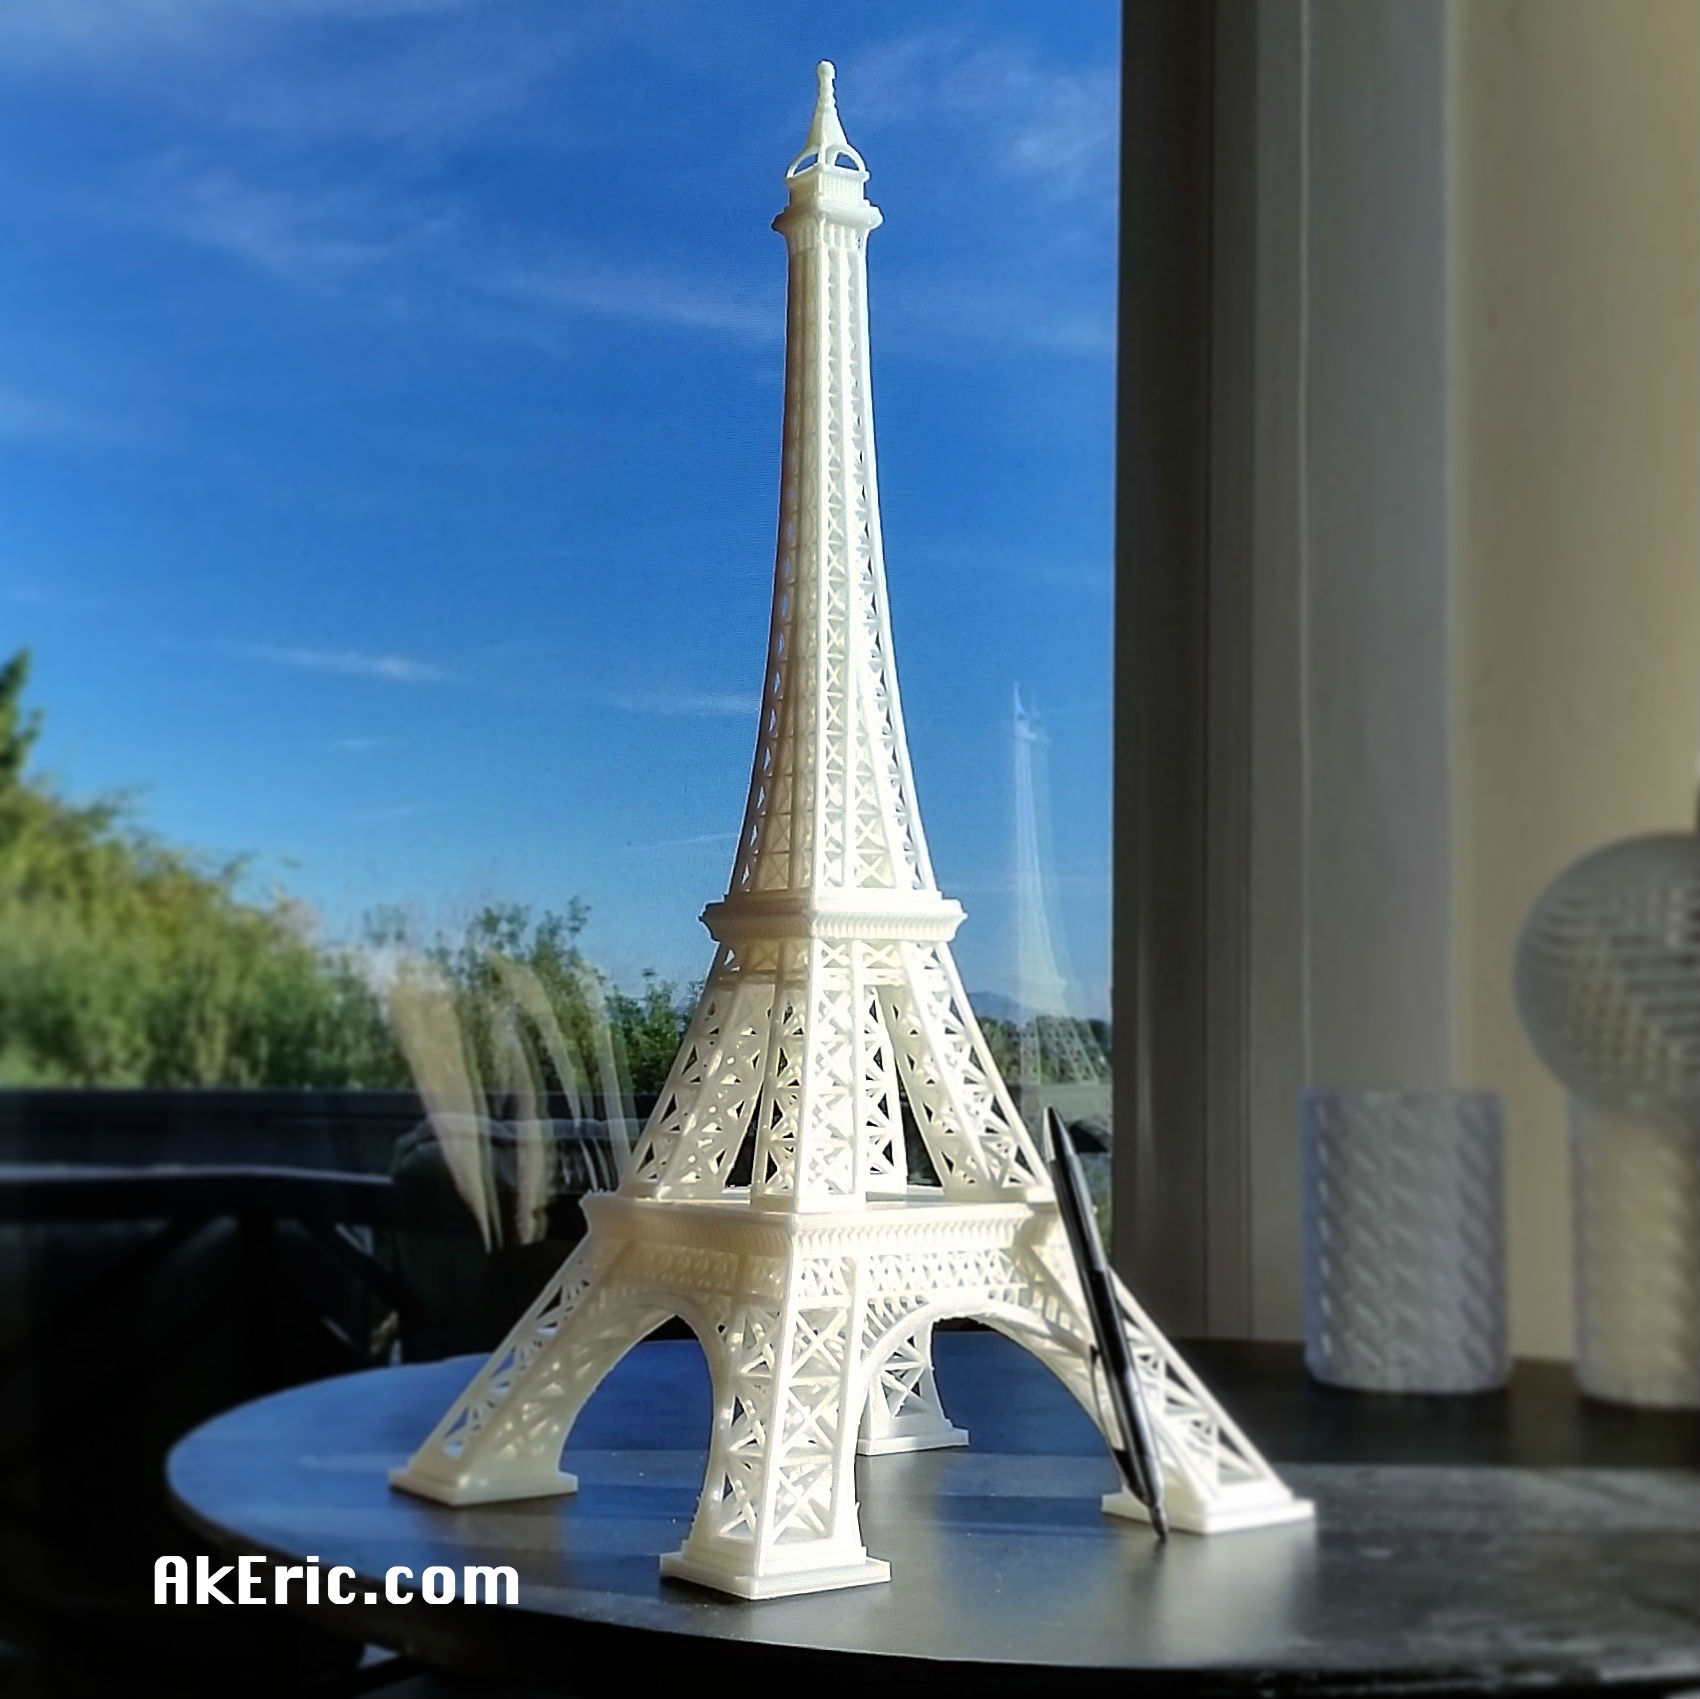 3D printed miniature Eiffel Tower